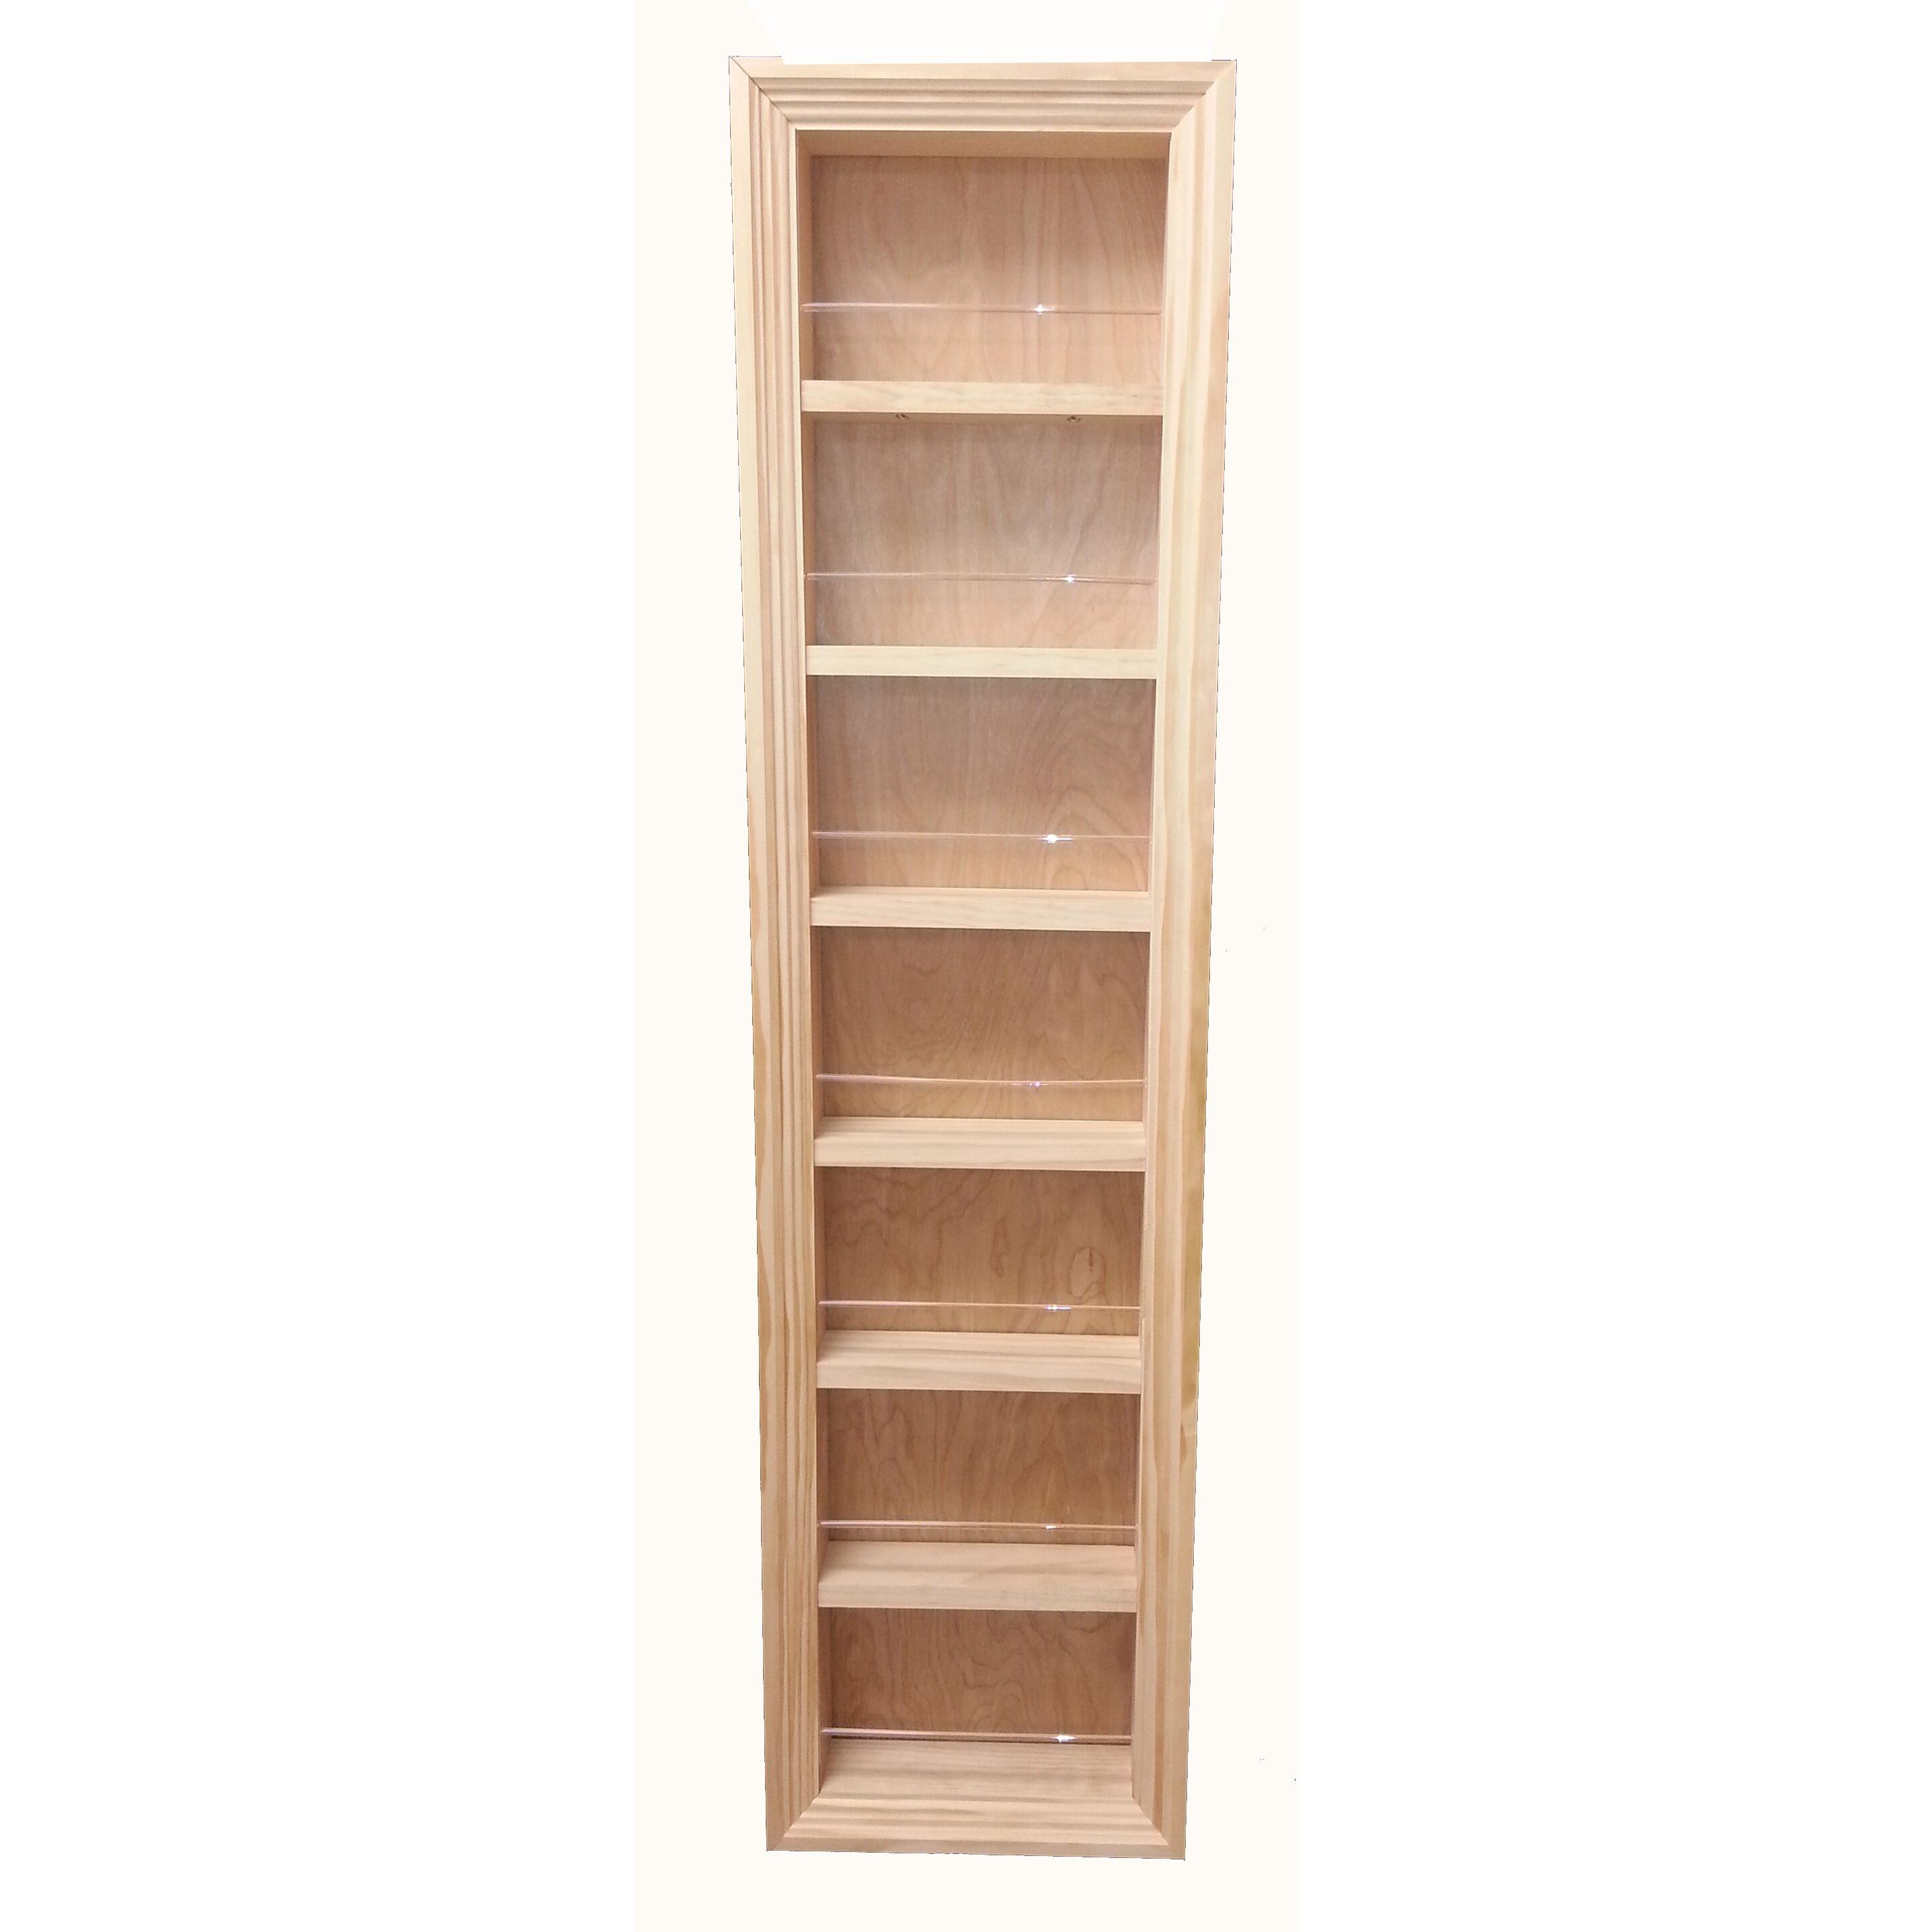 Wg Wood Products 49 5 Kitchen Pantry Cabinet